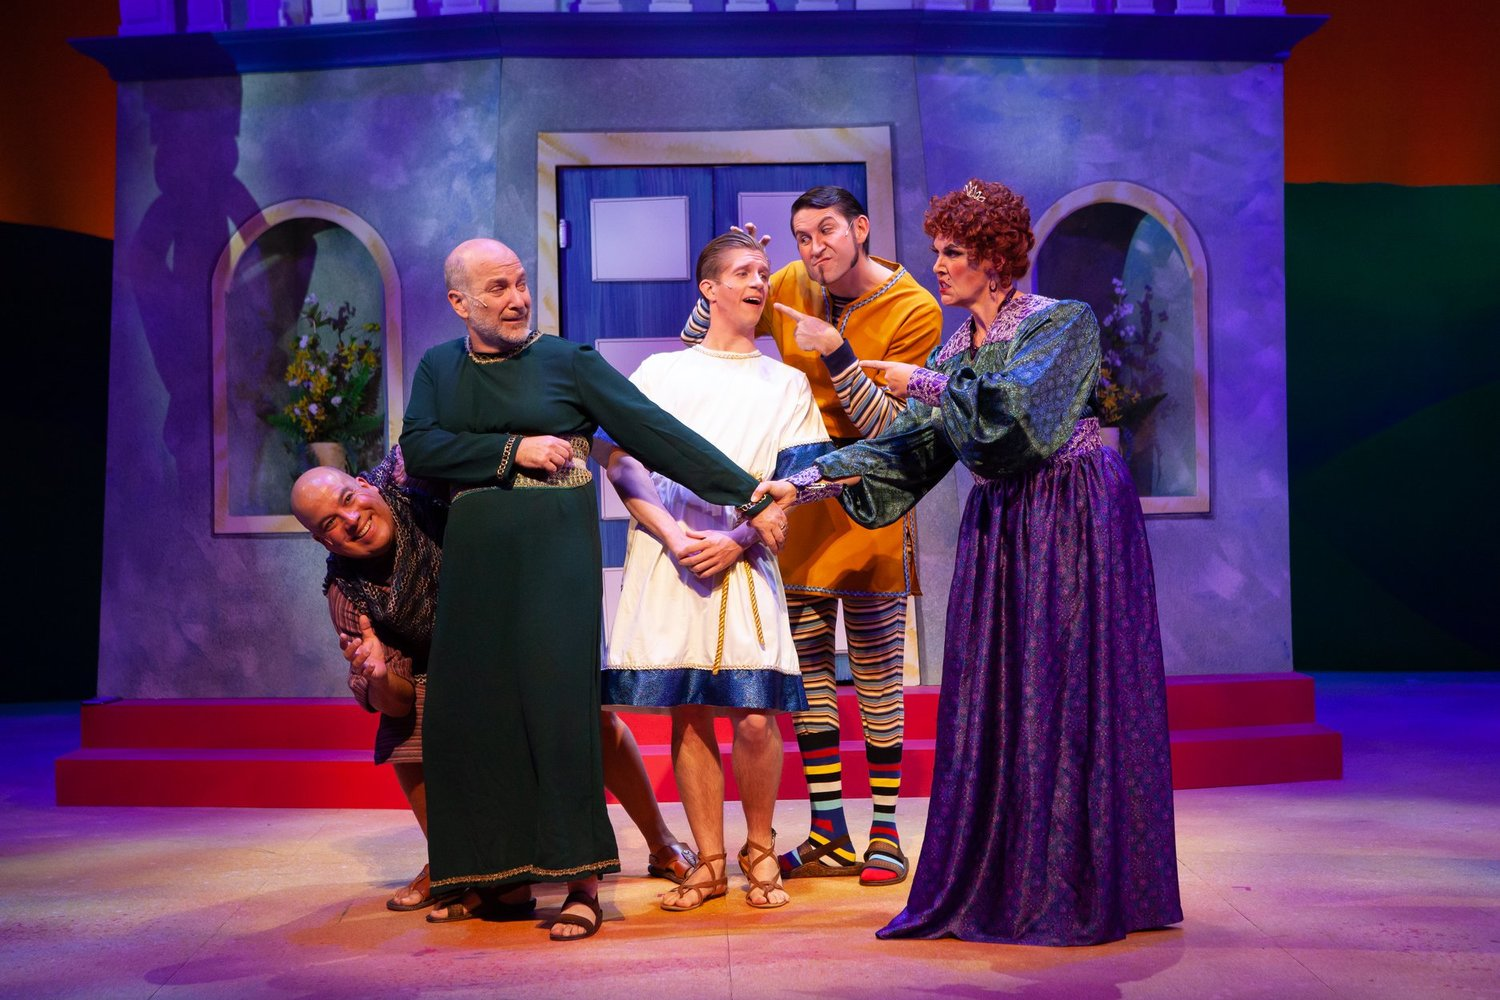 BWW Review: A FUNNY THING HAPPENED ON THE WAY TO THE FORUM at TheaterWorks - Sondheim Strikes Again in Peoria!